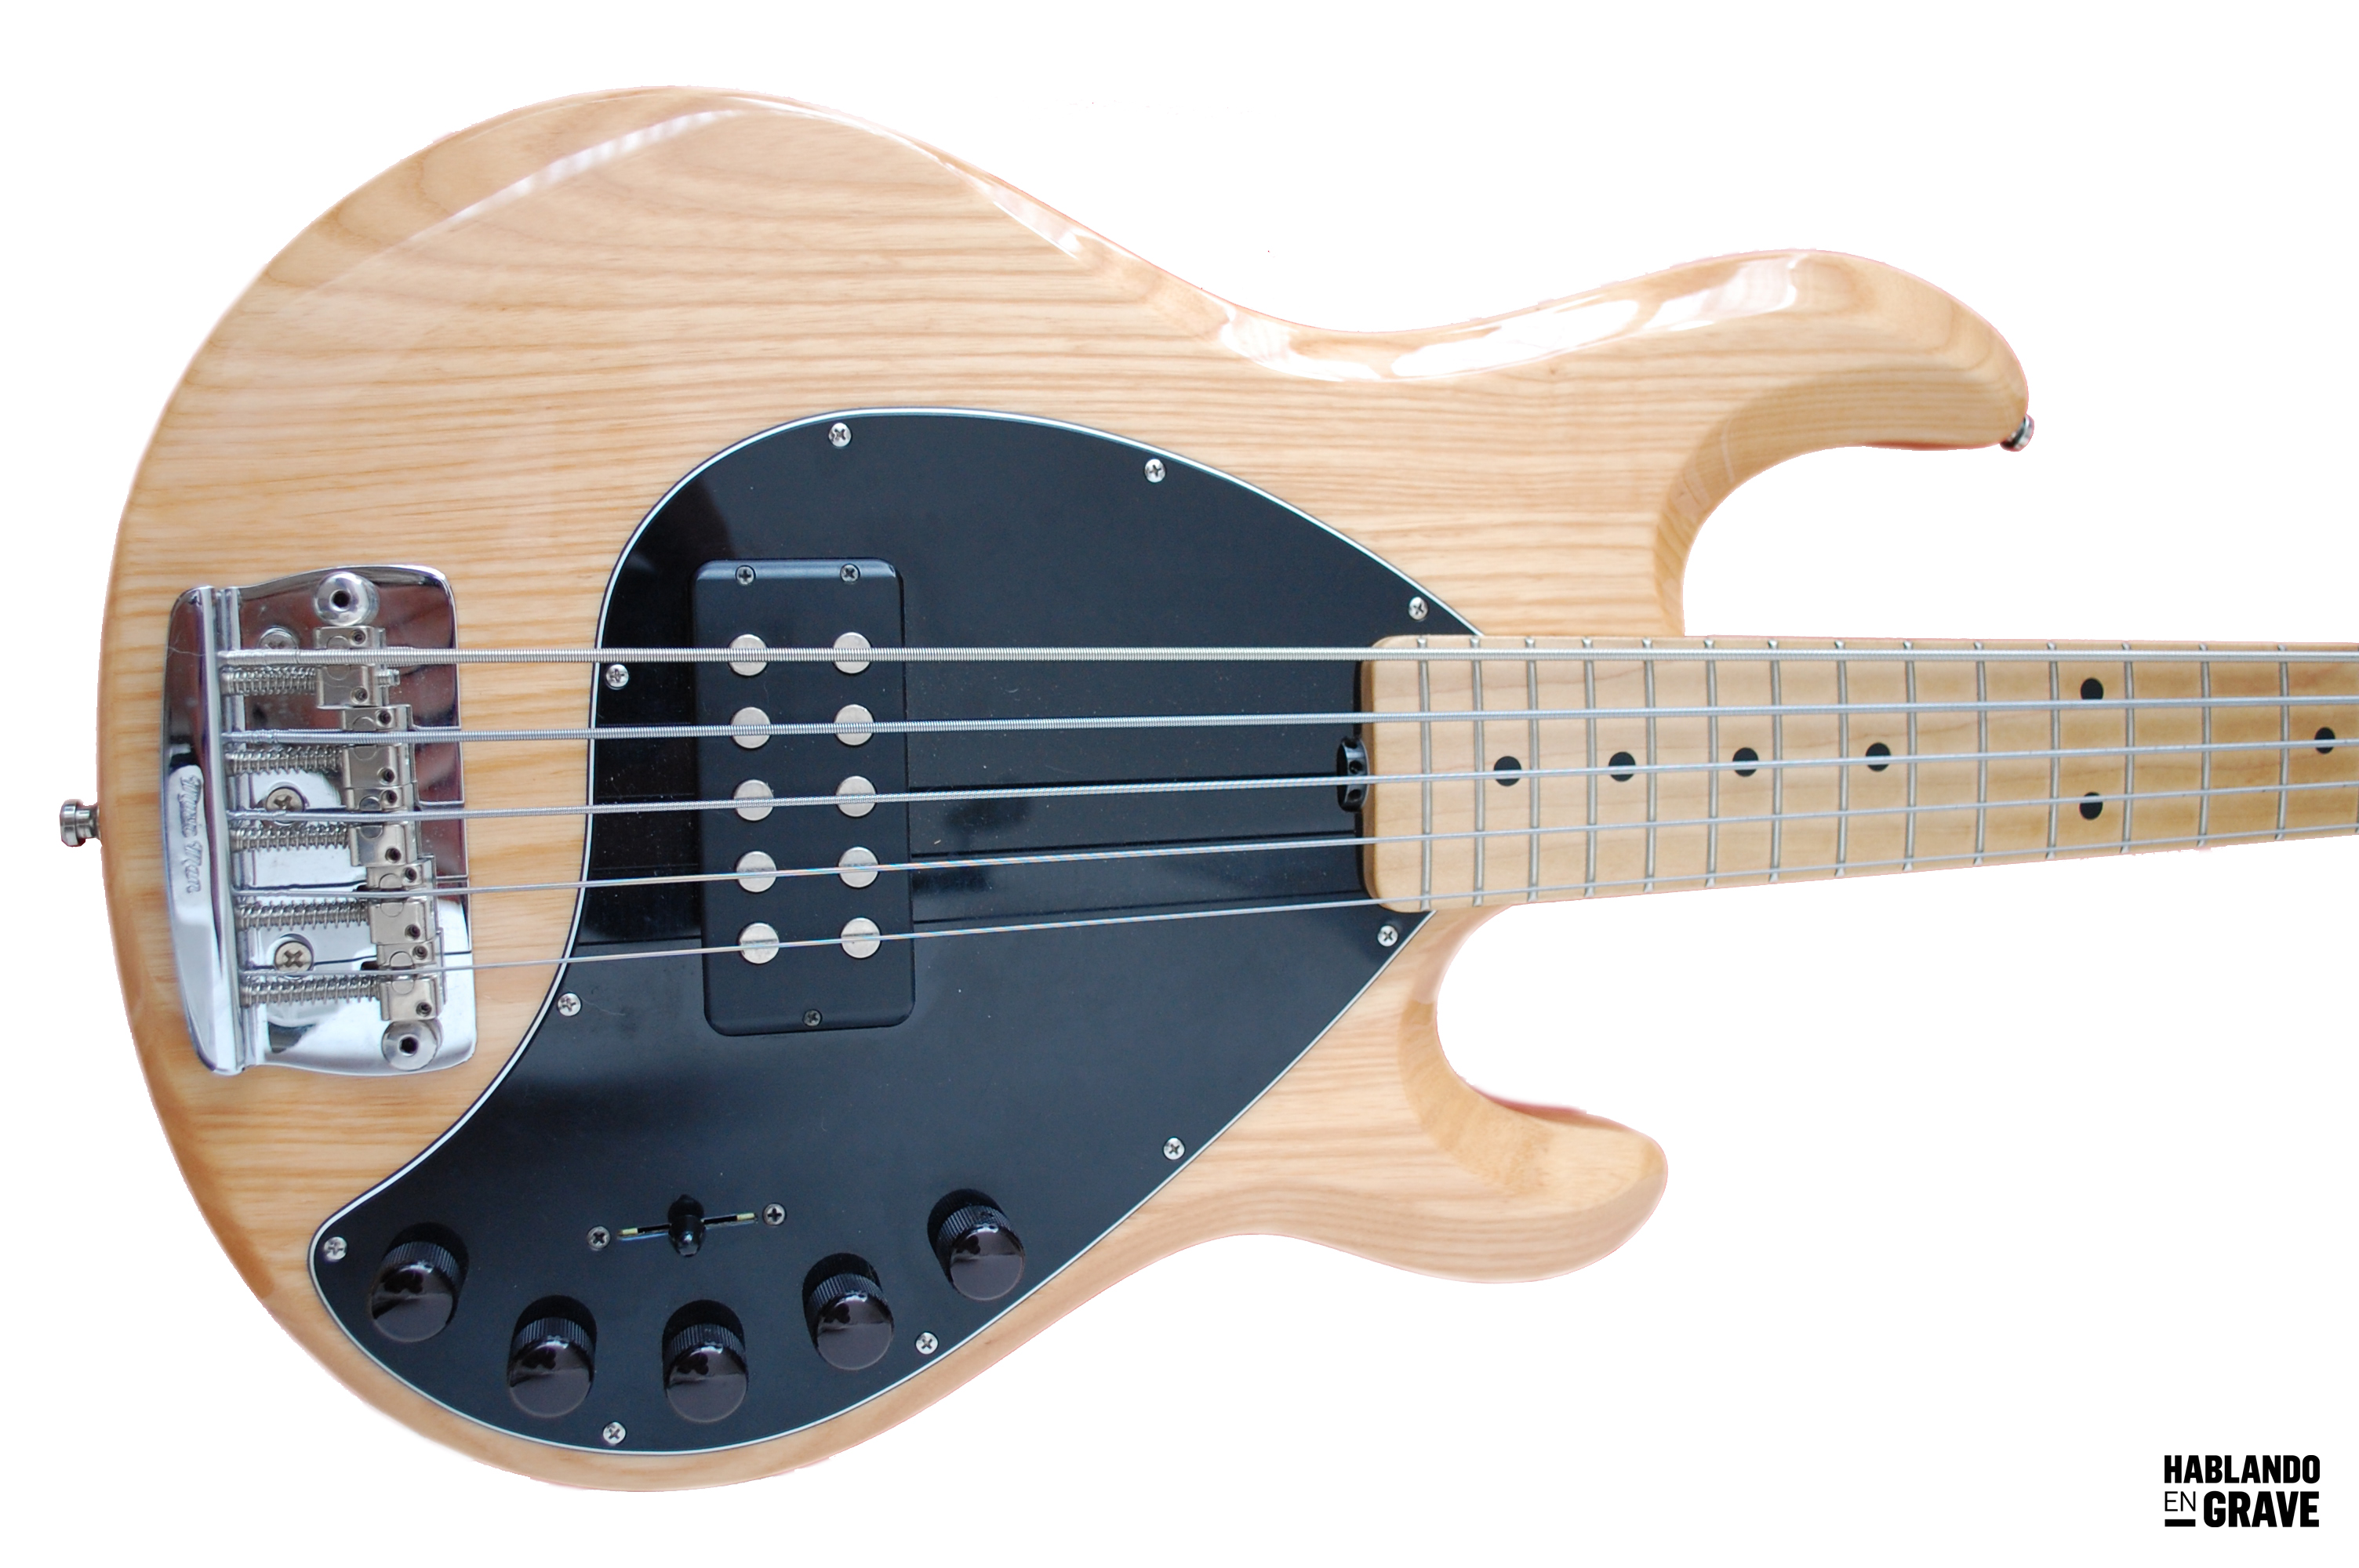 dating ernie ball stingray Dating (no not that kind) an ernie ball musicman stingray bass if this is your first visit, be sure to check out the faq by clicking the link above you may have to register before you can post: click the register link above to proceed.